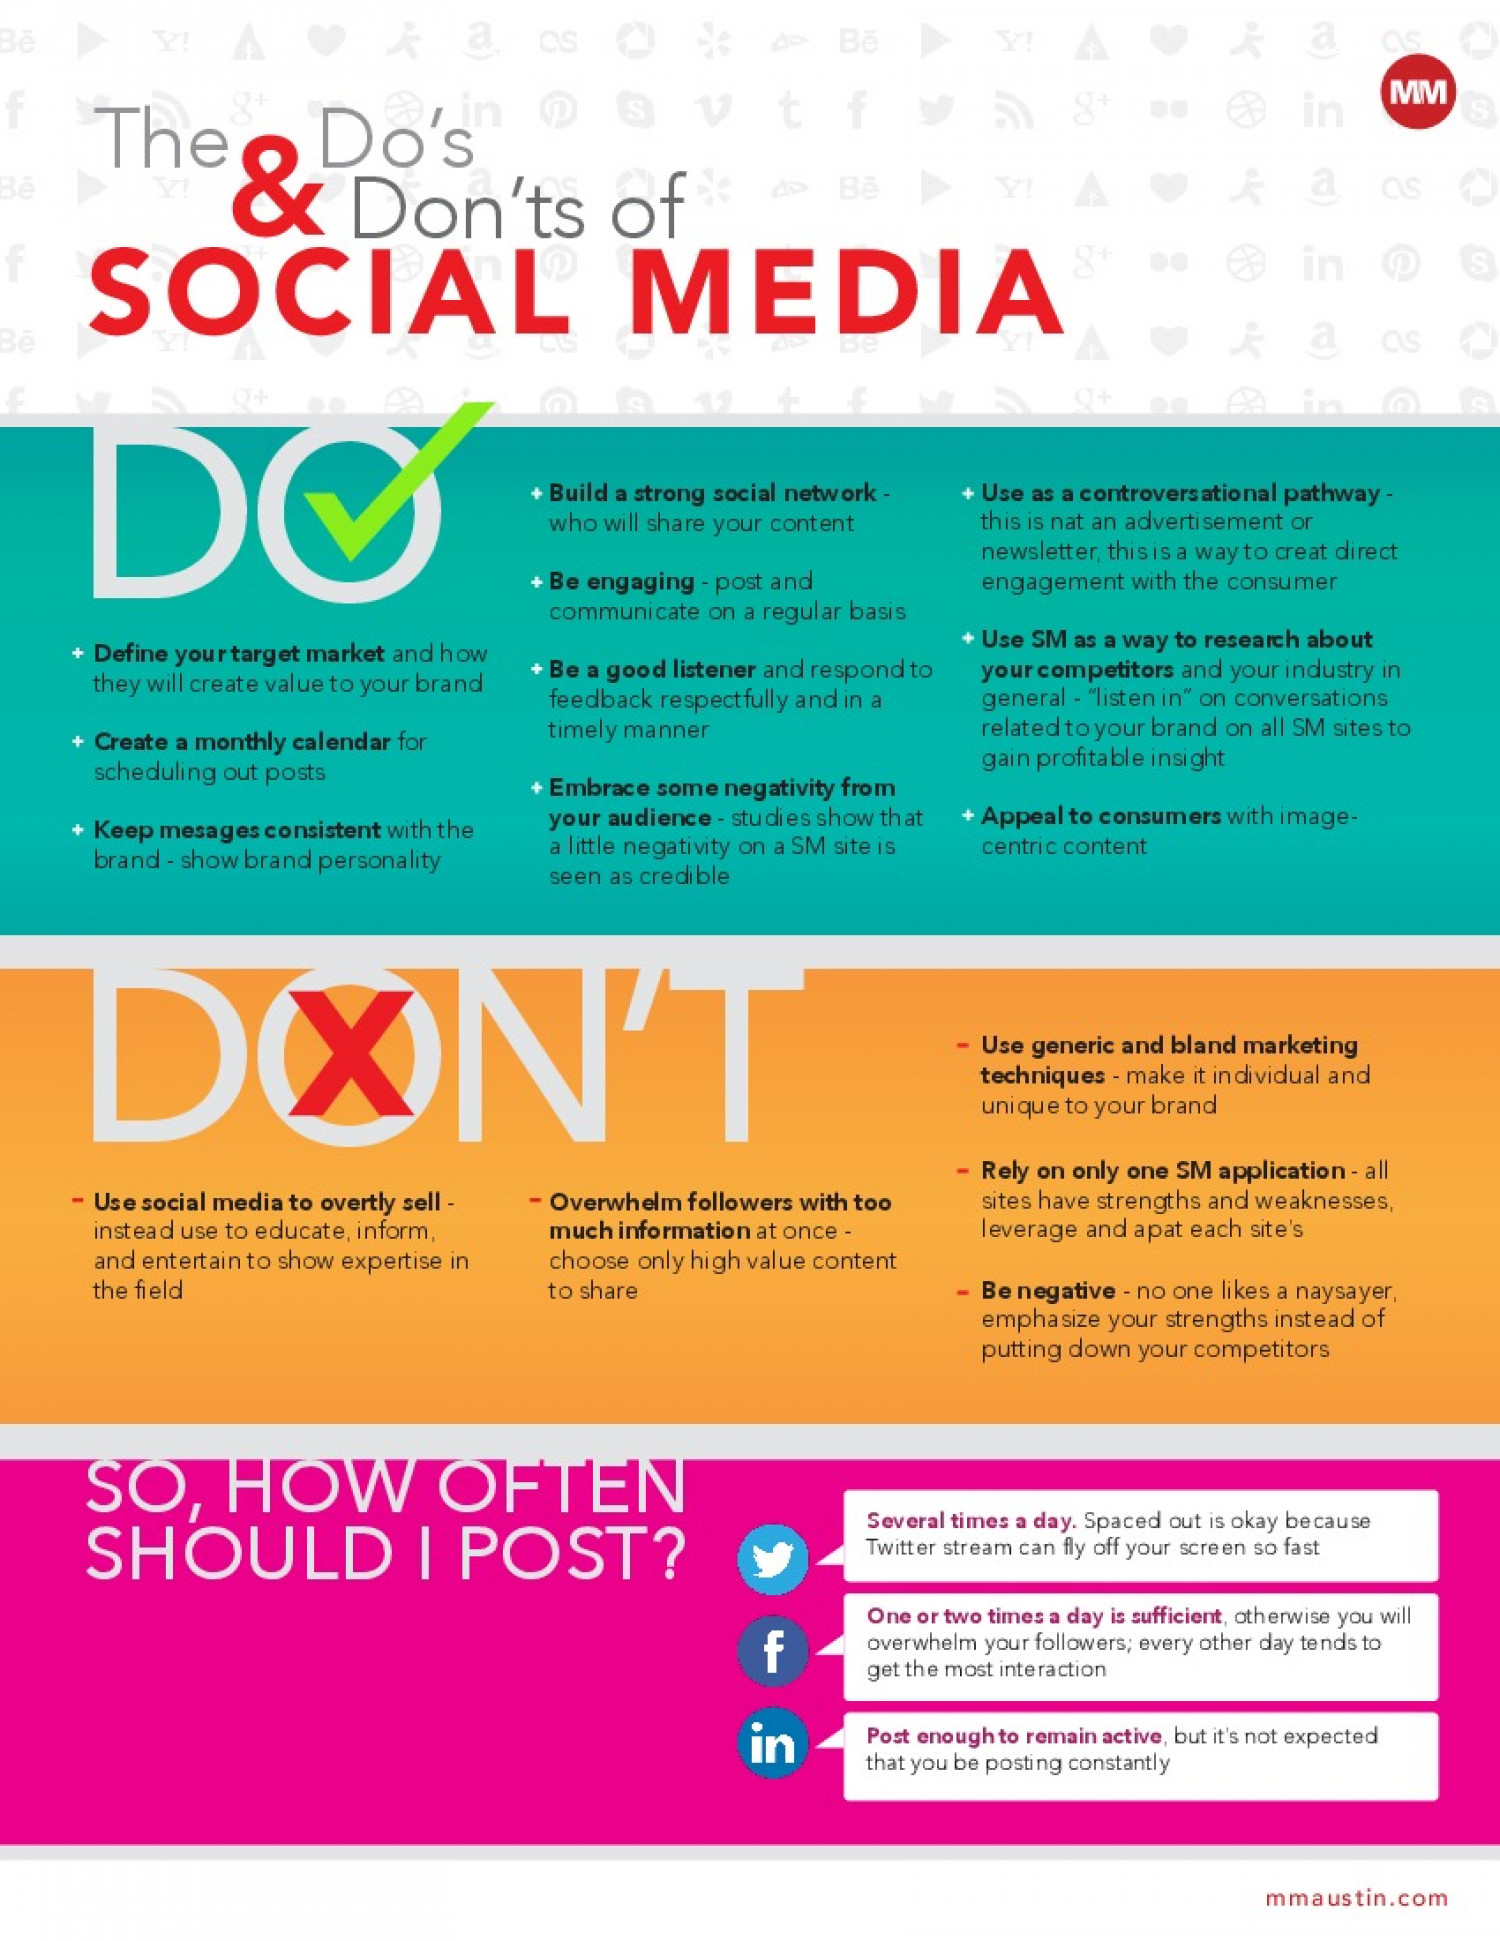 Social Media Do's and Don'ts Infographic